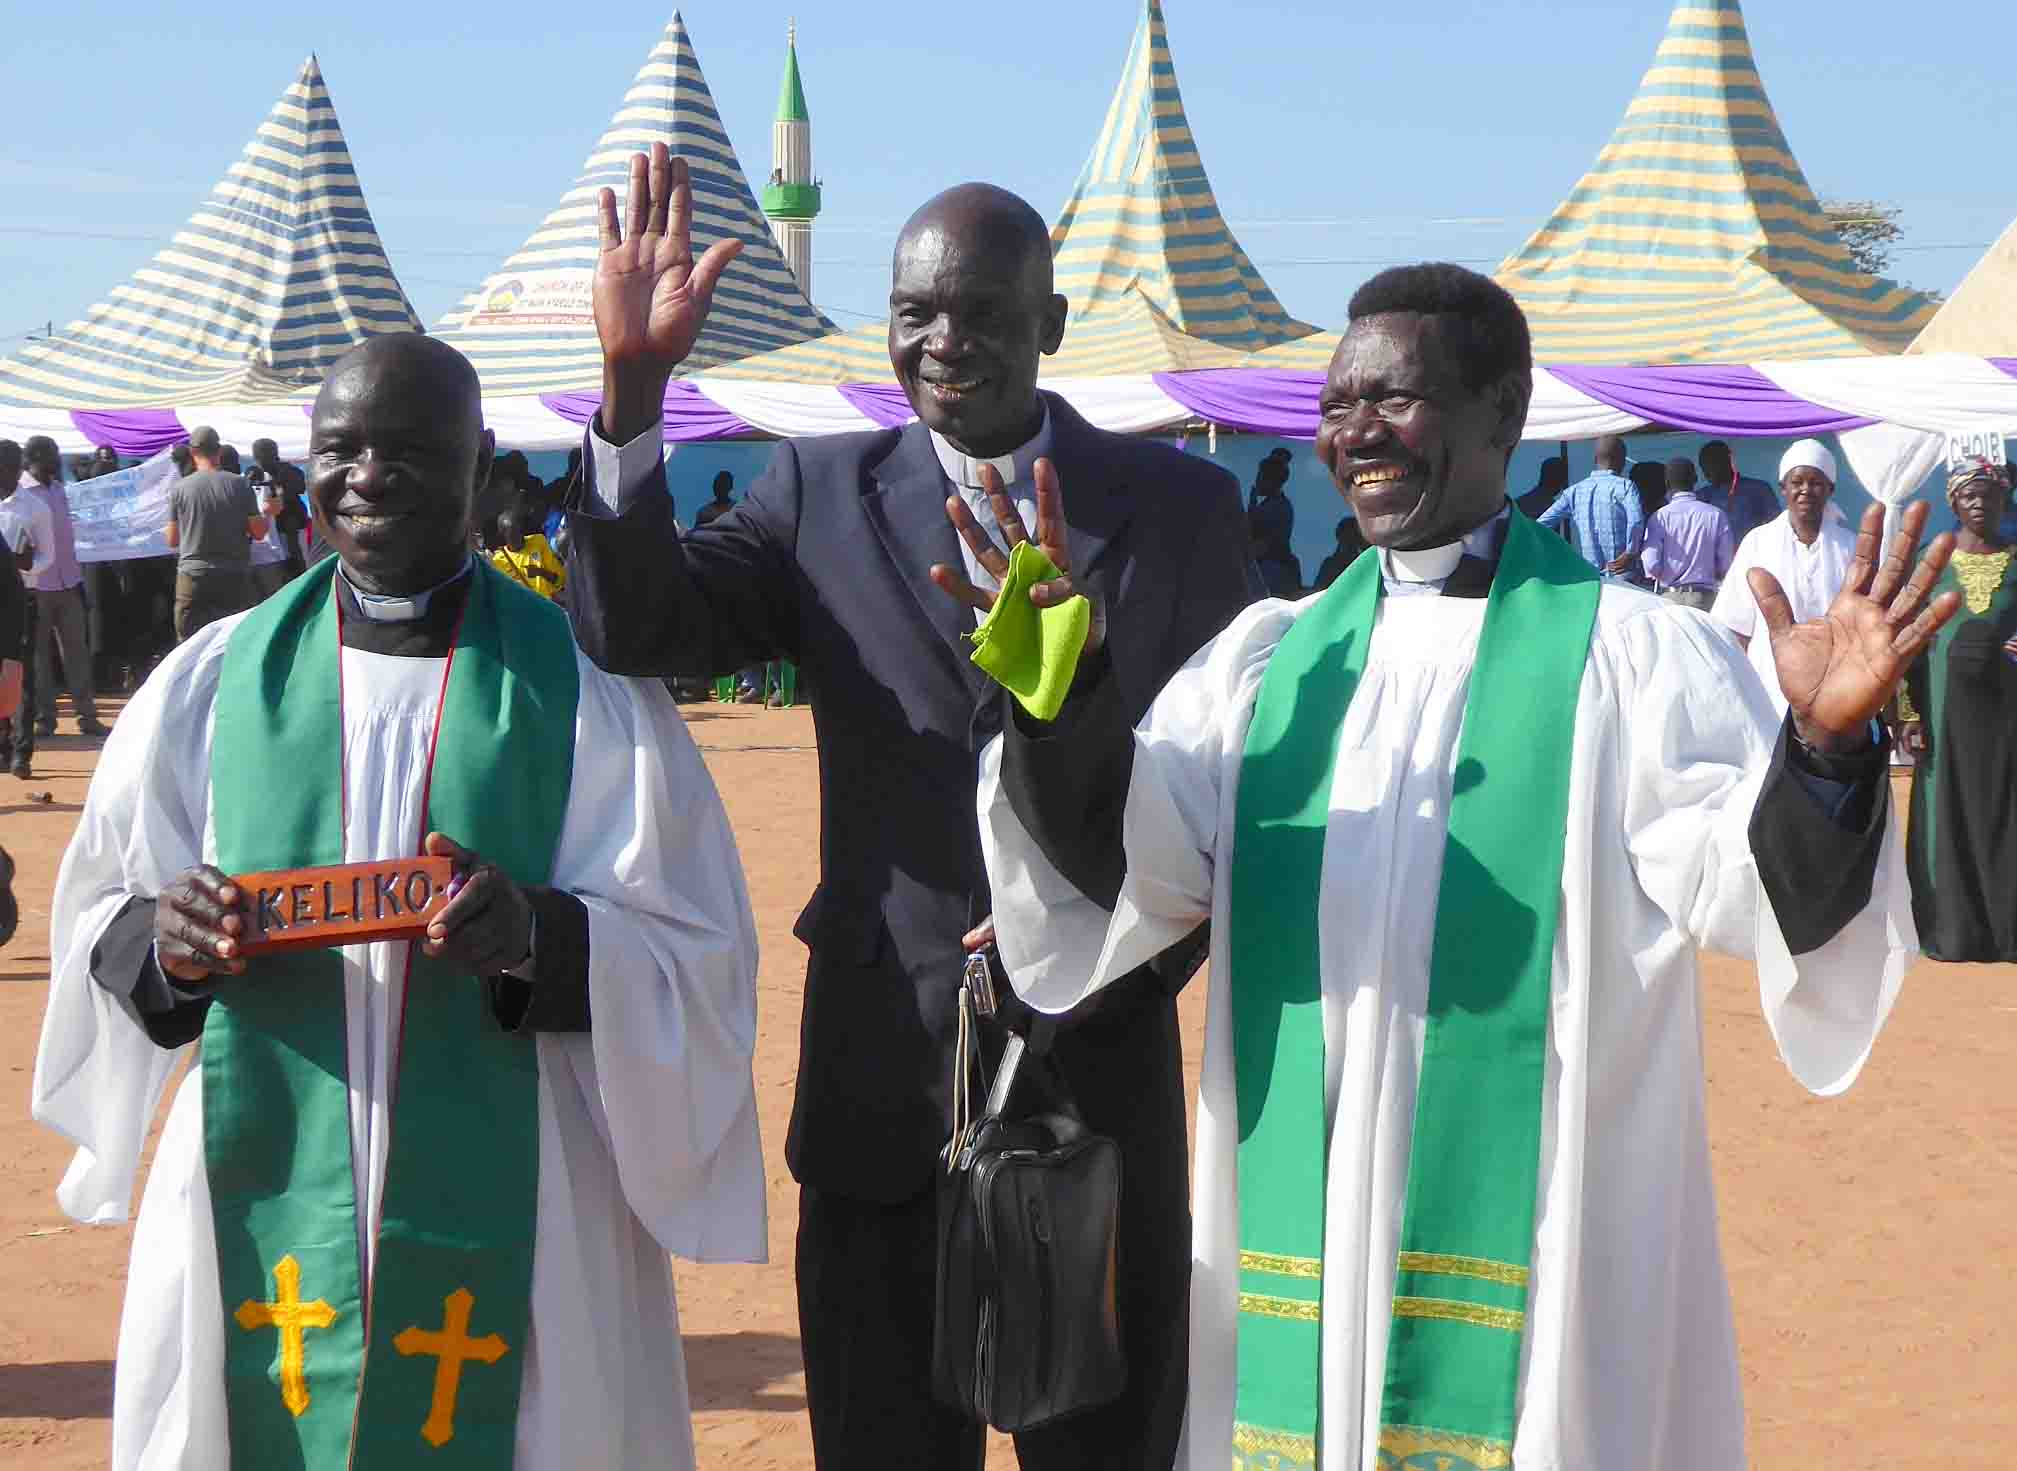 Translators and pastors Ezekiah Dada, Isaac Kenyi and Enos Dada celebrate the completed Keliko New Testament. Photo: April Haberger.